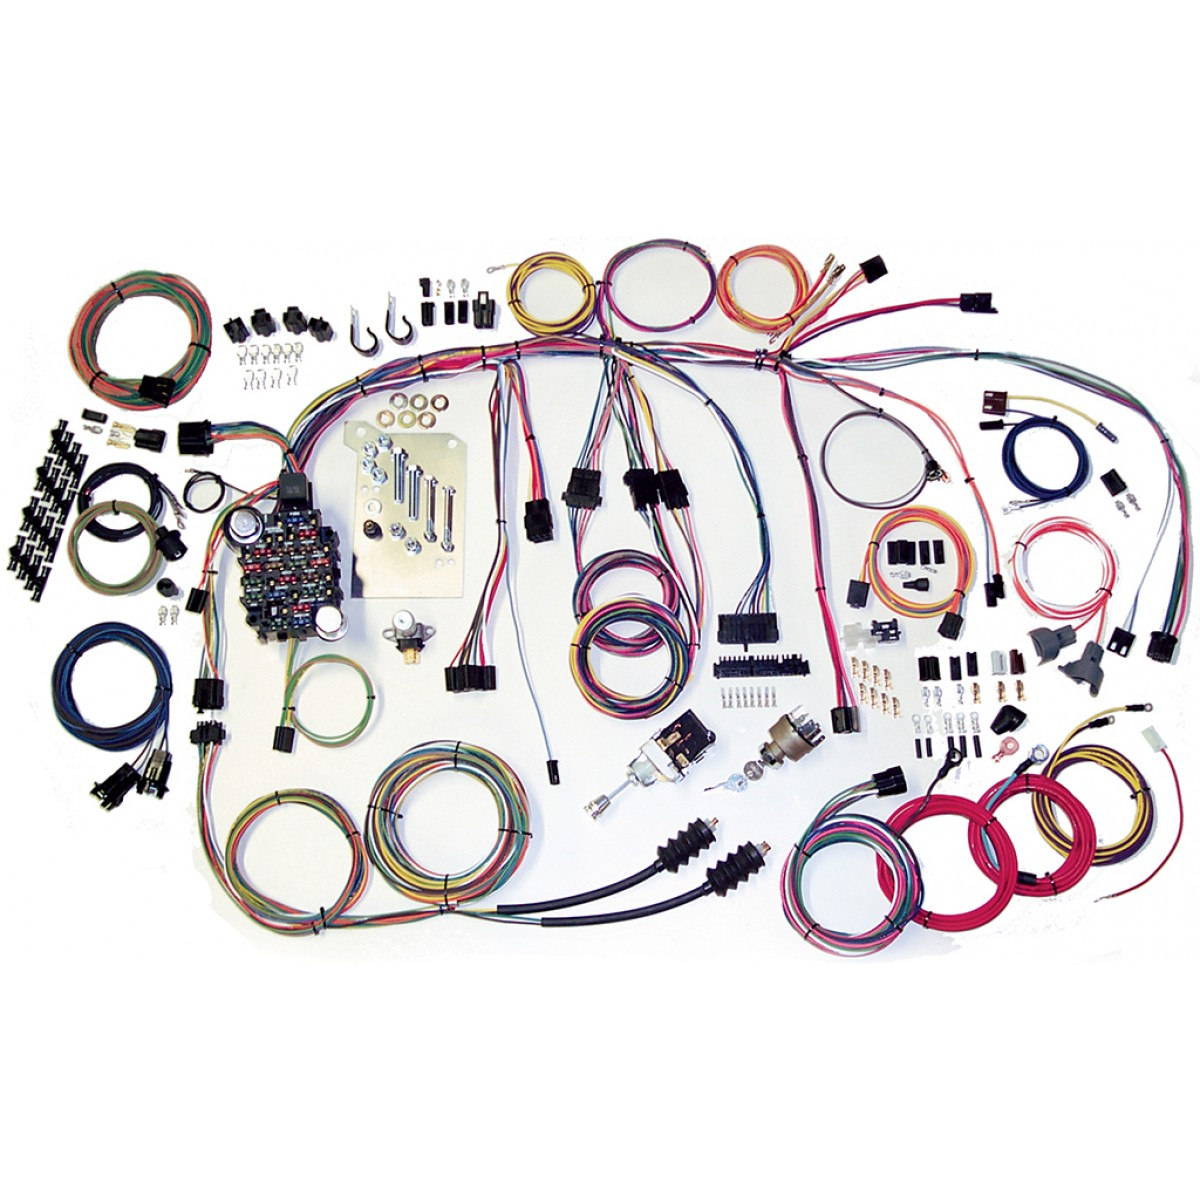 60 66 chevy truck wiring harness kit 1960 1966 chevy truck part 500560 chevy c10 c20 wiring harness chevy c10 wiring harness complete wiring harness kit 1960 1966 chevy wiring harness at readyjetset.co